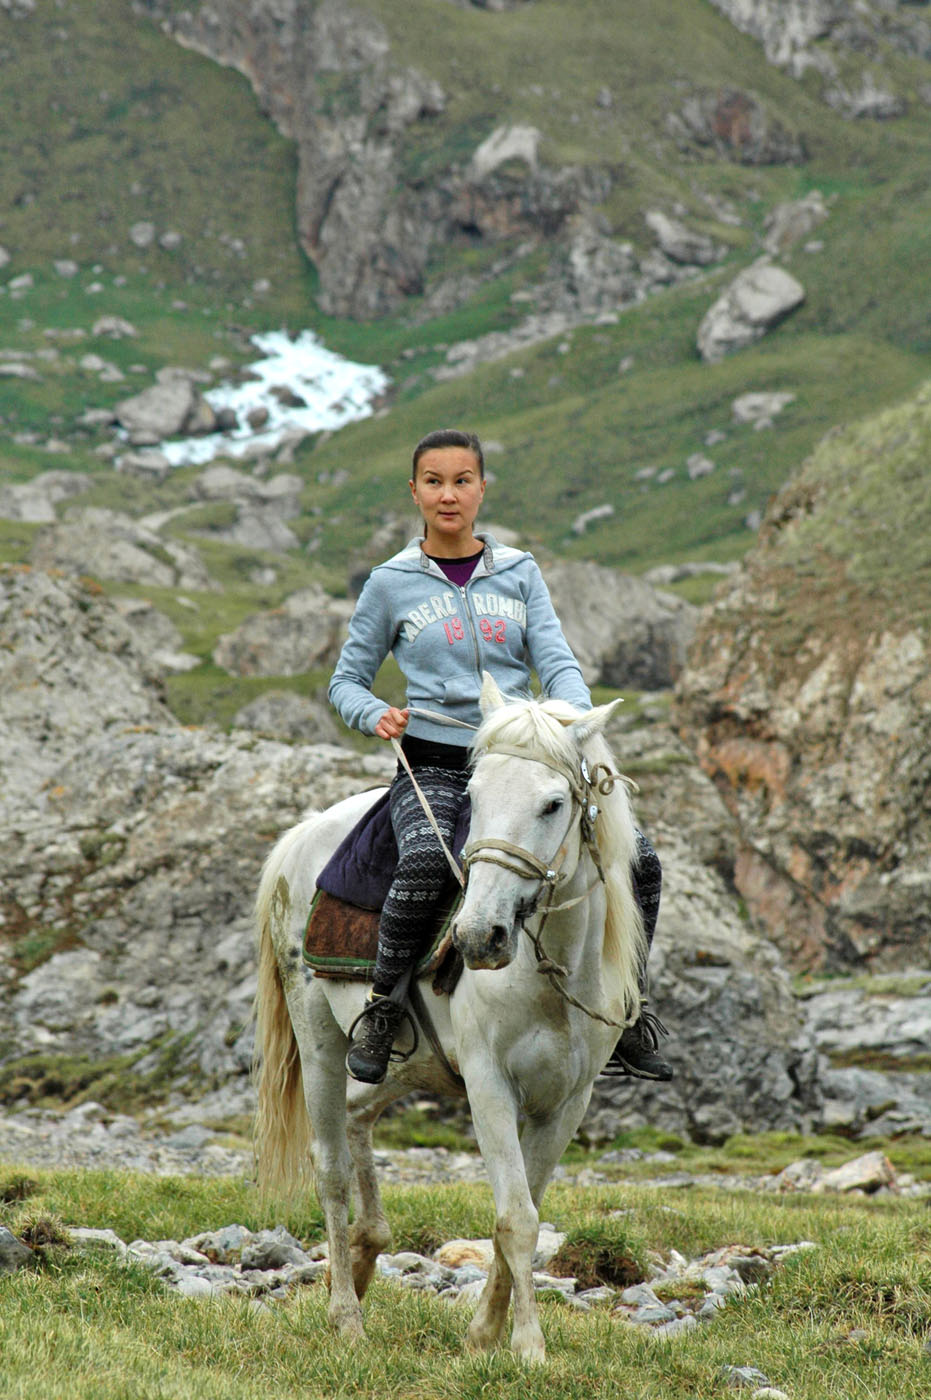 And Alina has quickly found a horse for herself. As they say in our country, 'a Kyrgyz girl is waiting for a prince on a white and delicious horse'.   Photo: Azamat Imanaliev